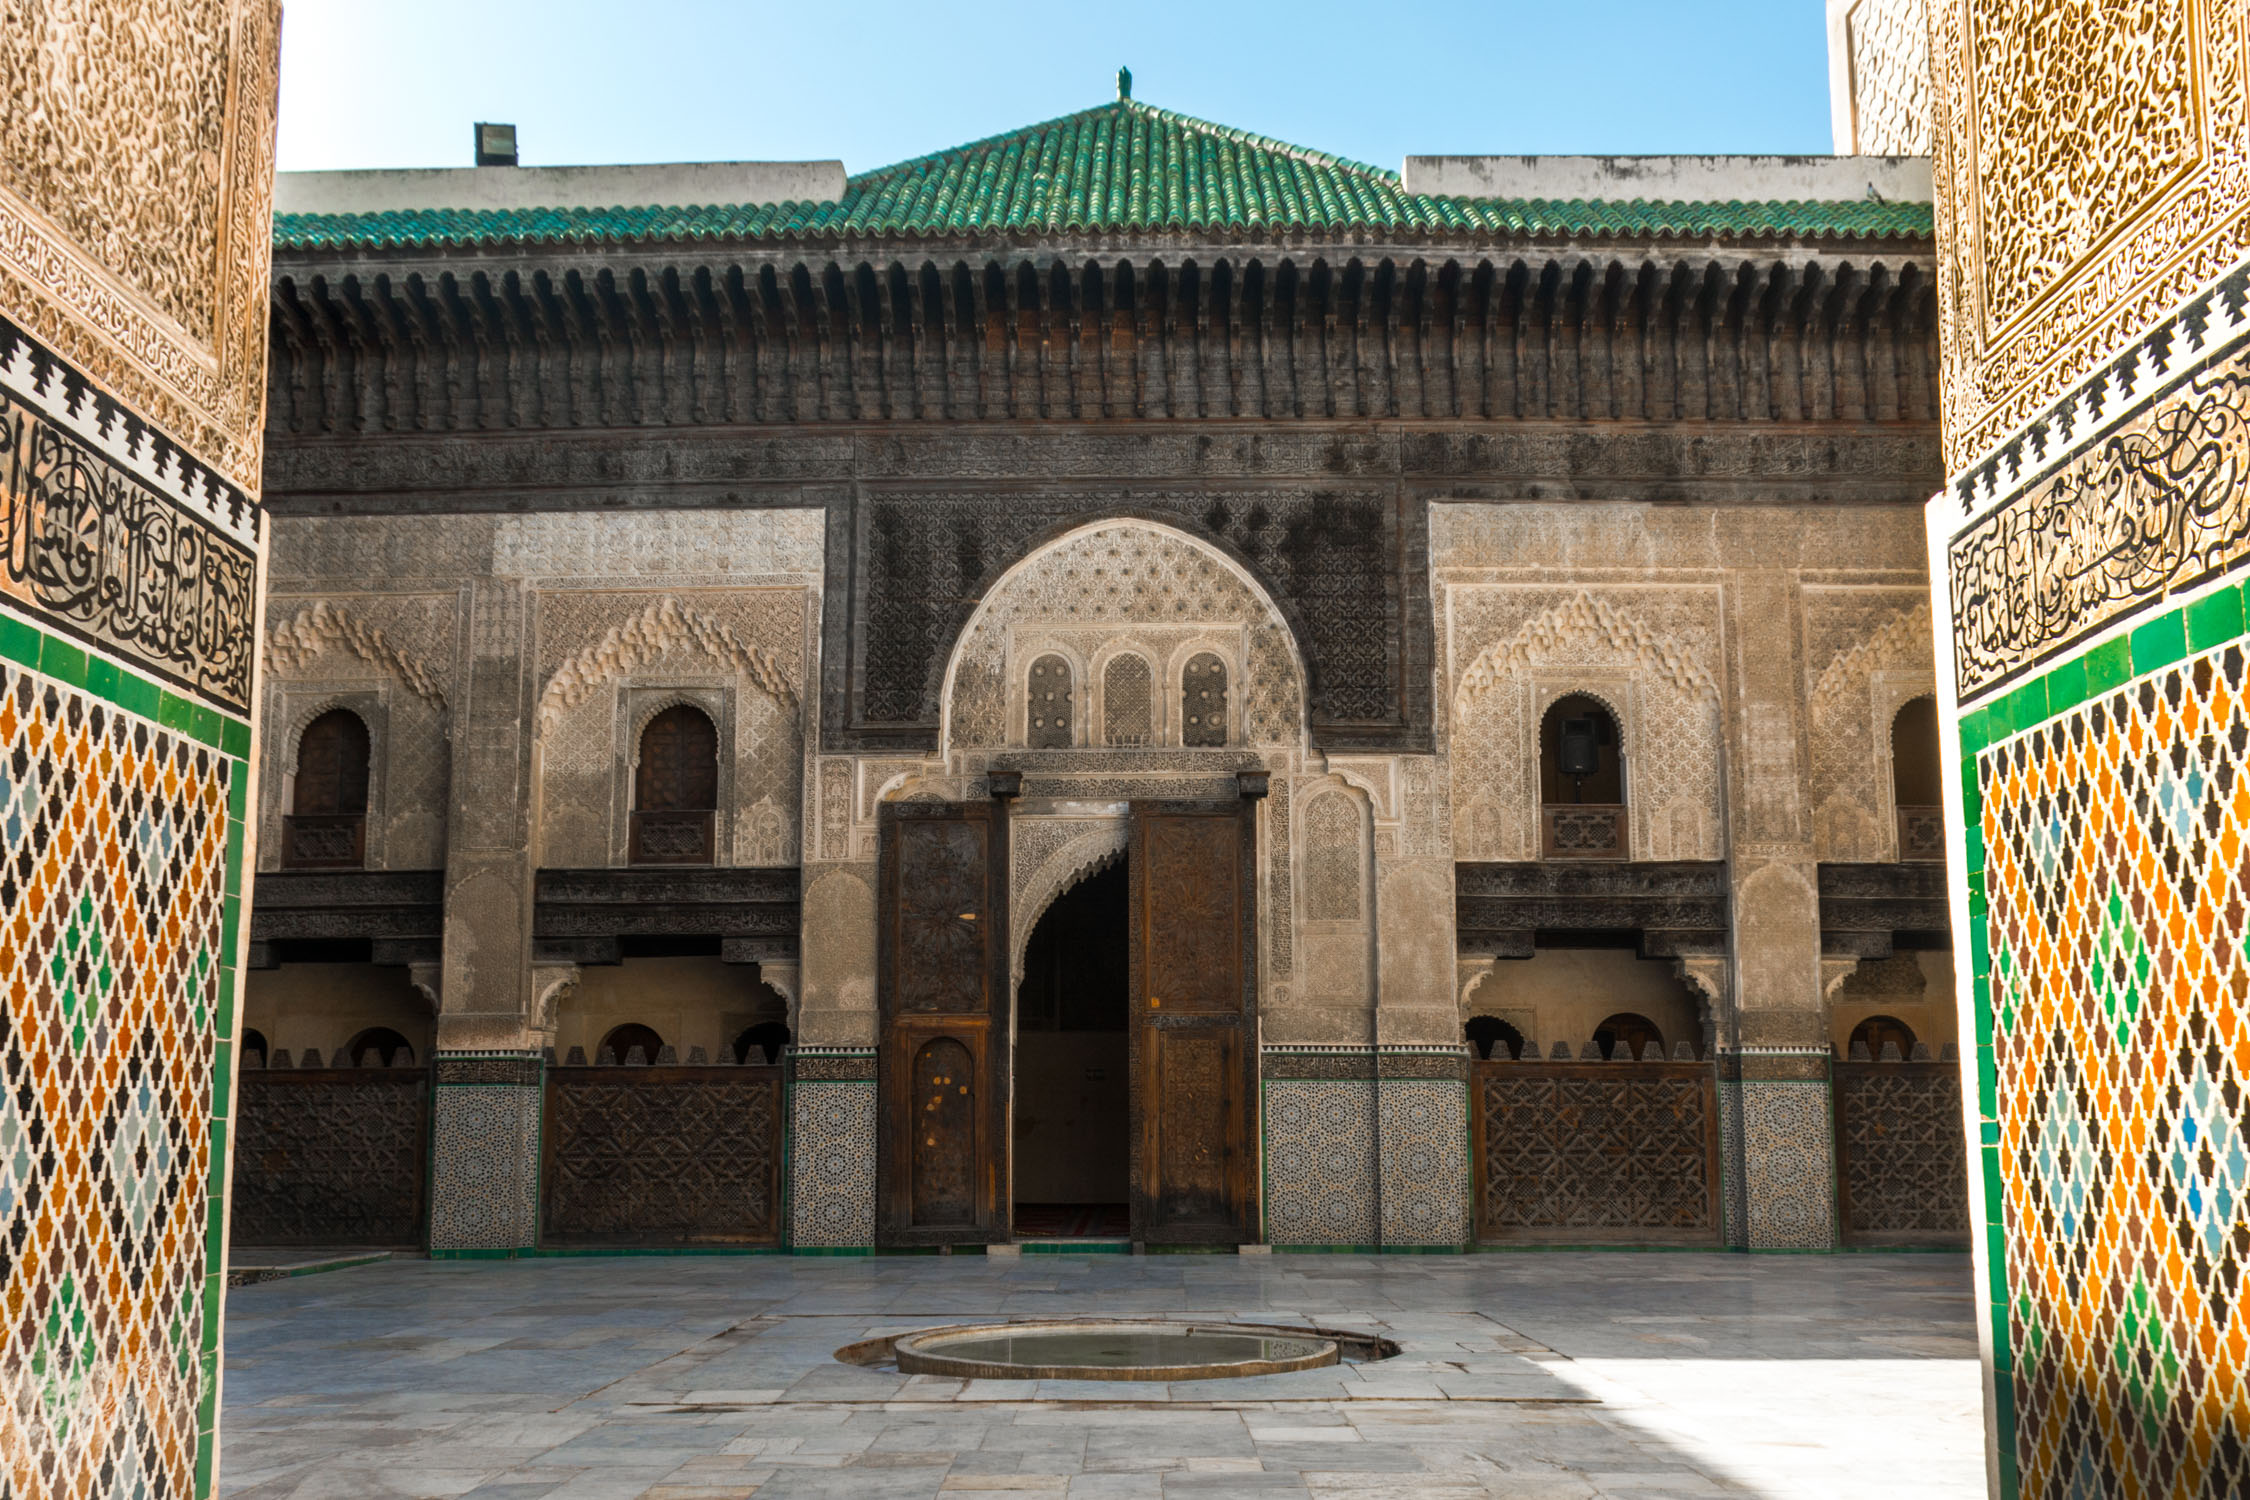 One of the mosques we visited with our guide